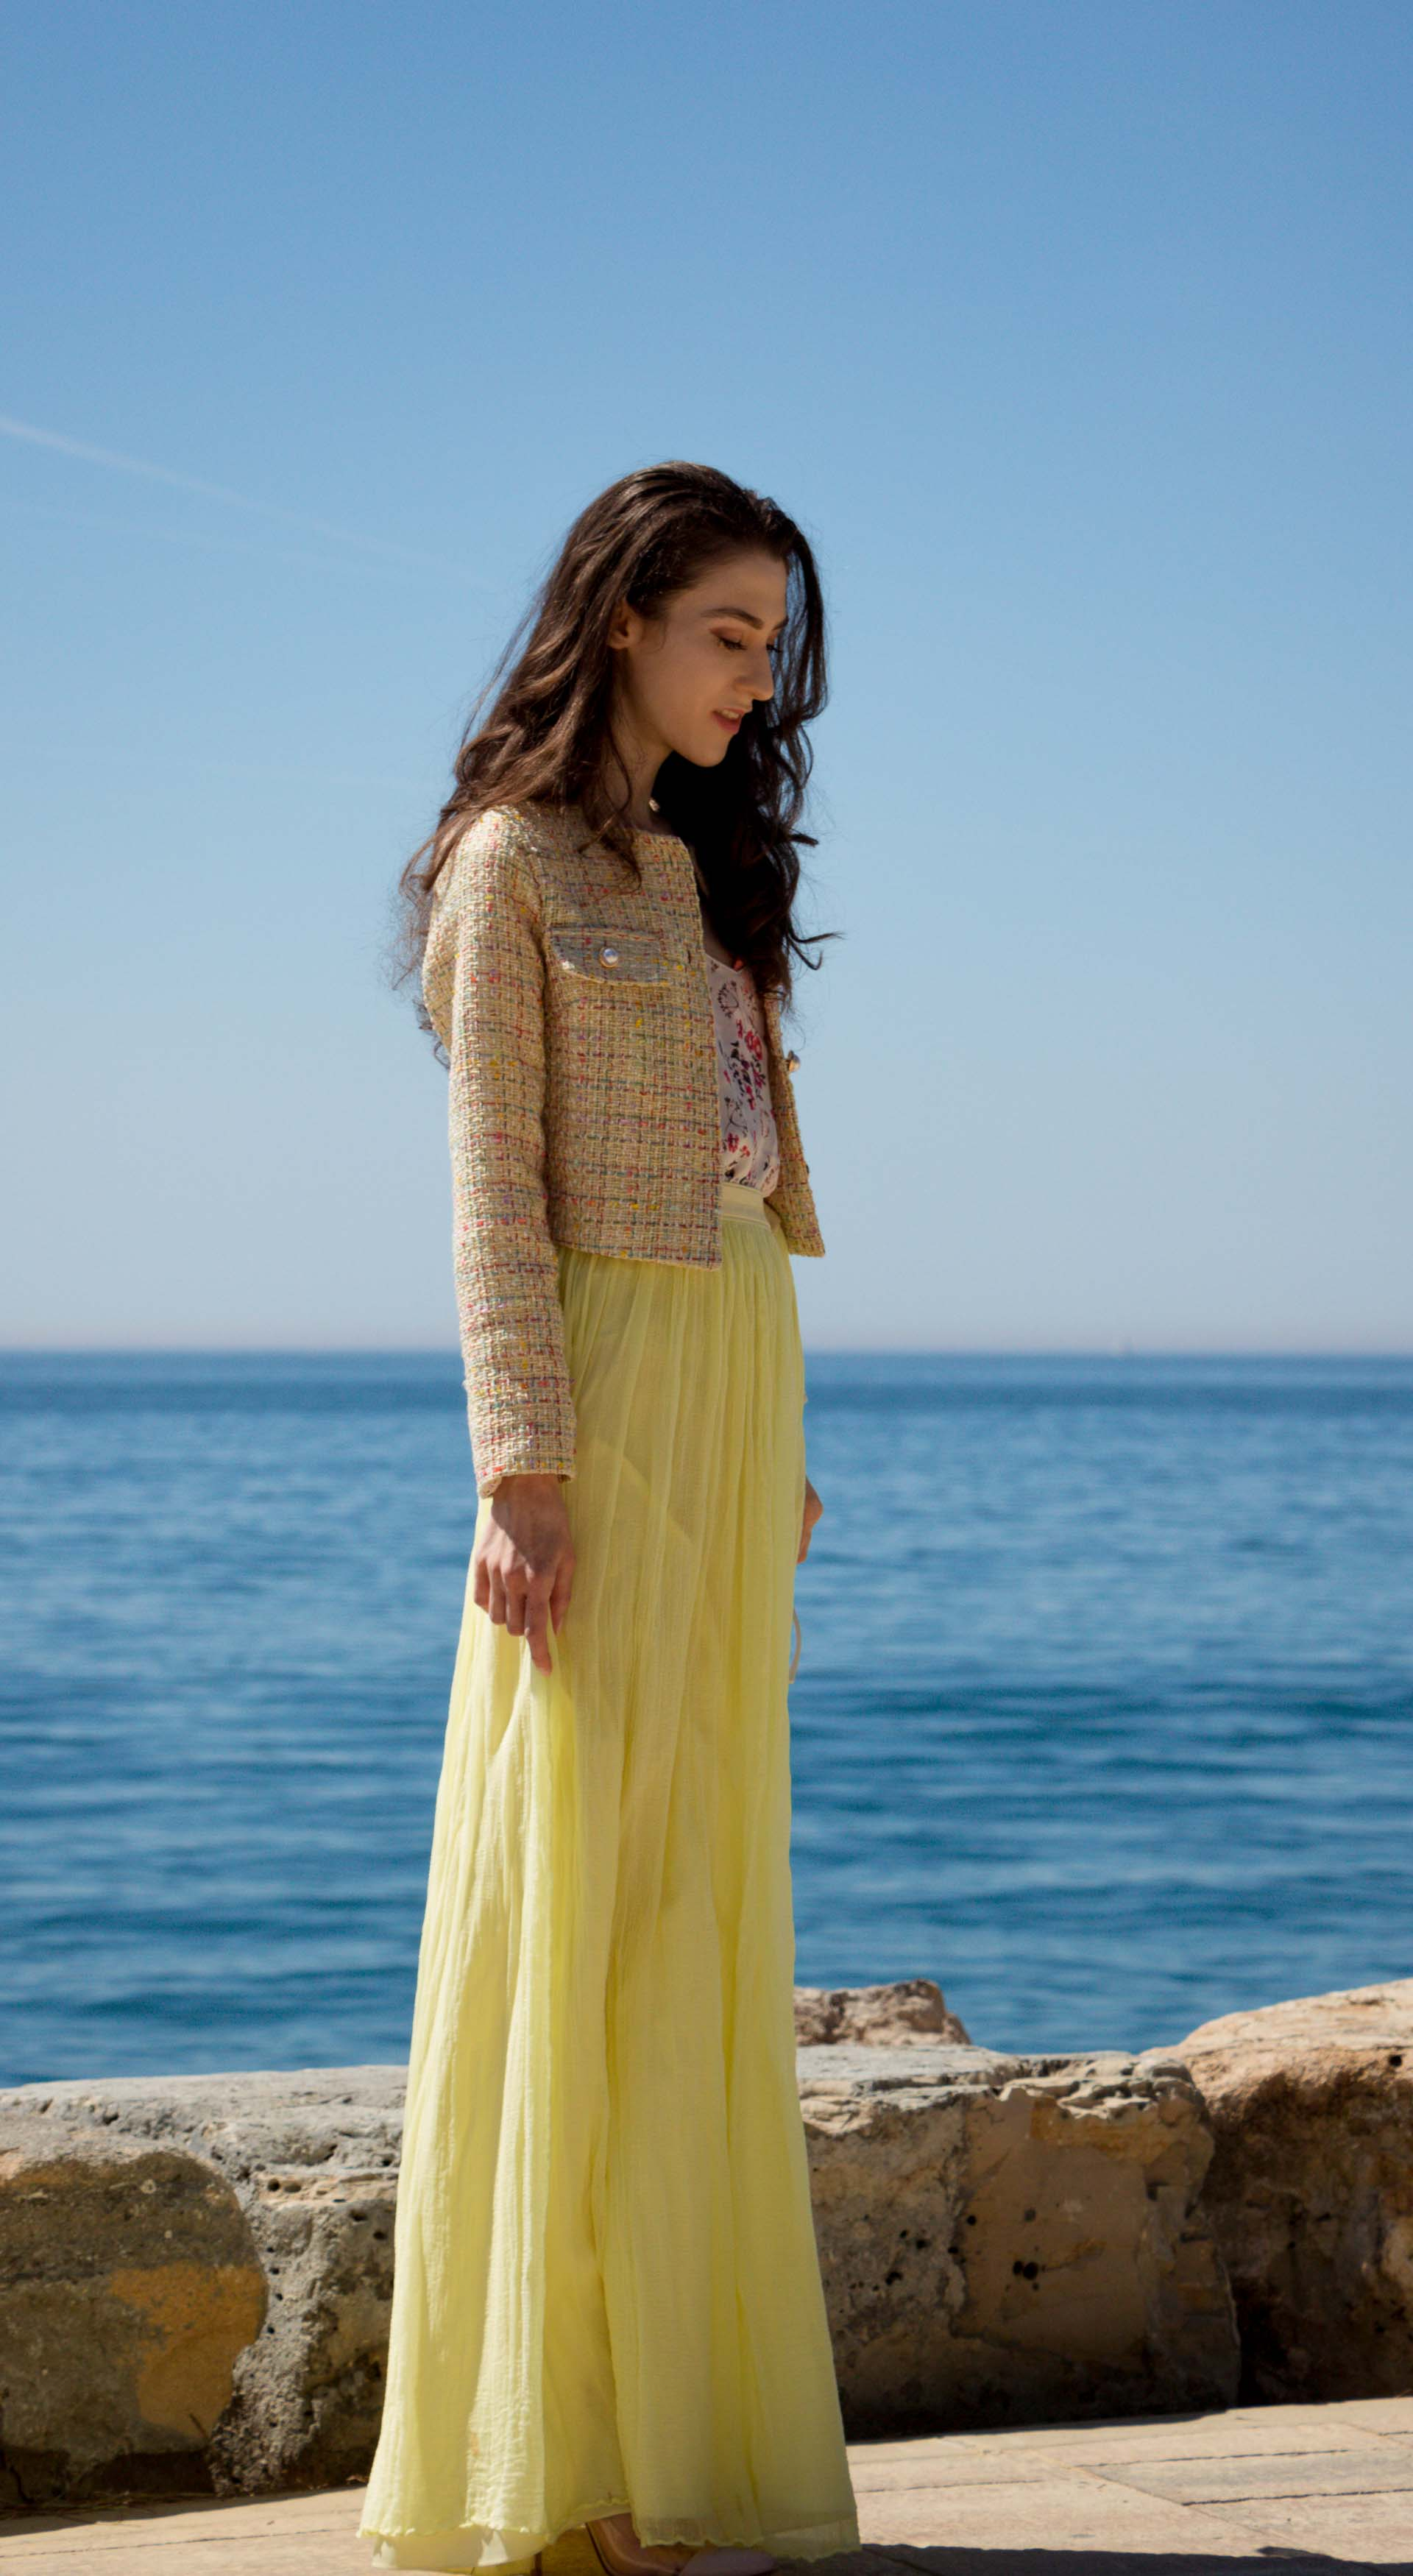 Veronika Lipar Fashion Blogger of Brunette from Wall Street wearing maxi yellow tulle skirt from Needle & Thread, short yellow tweed jacket from Storets, floral silk top, blush Gianvito Rossi plexi pumps, white shoulder bag by the sea